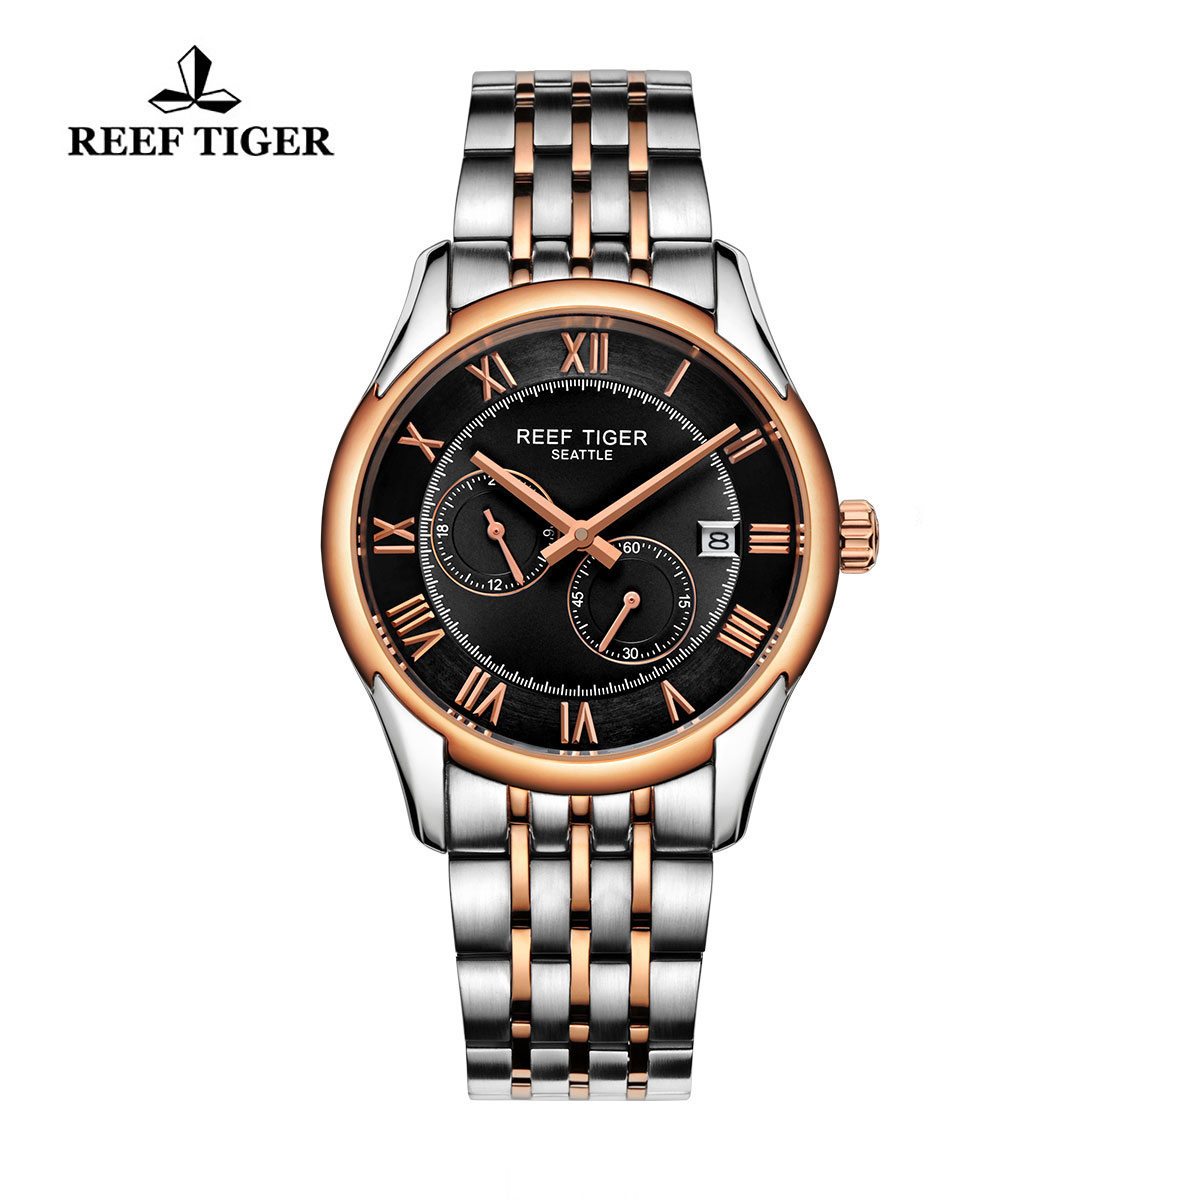 Reef Tiger Business Watch Rose Gold/Steel Black Dial Automatic Watch RGA165-TBT